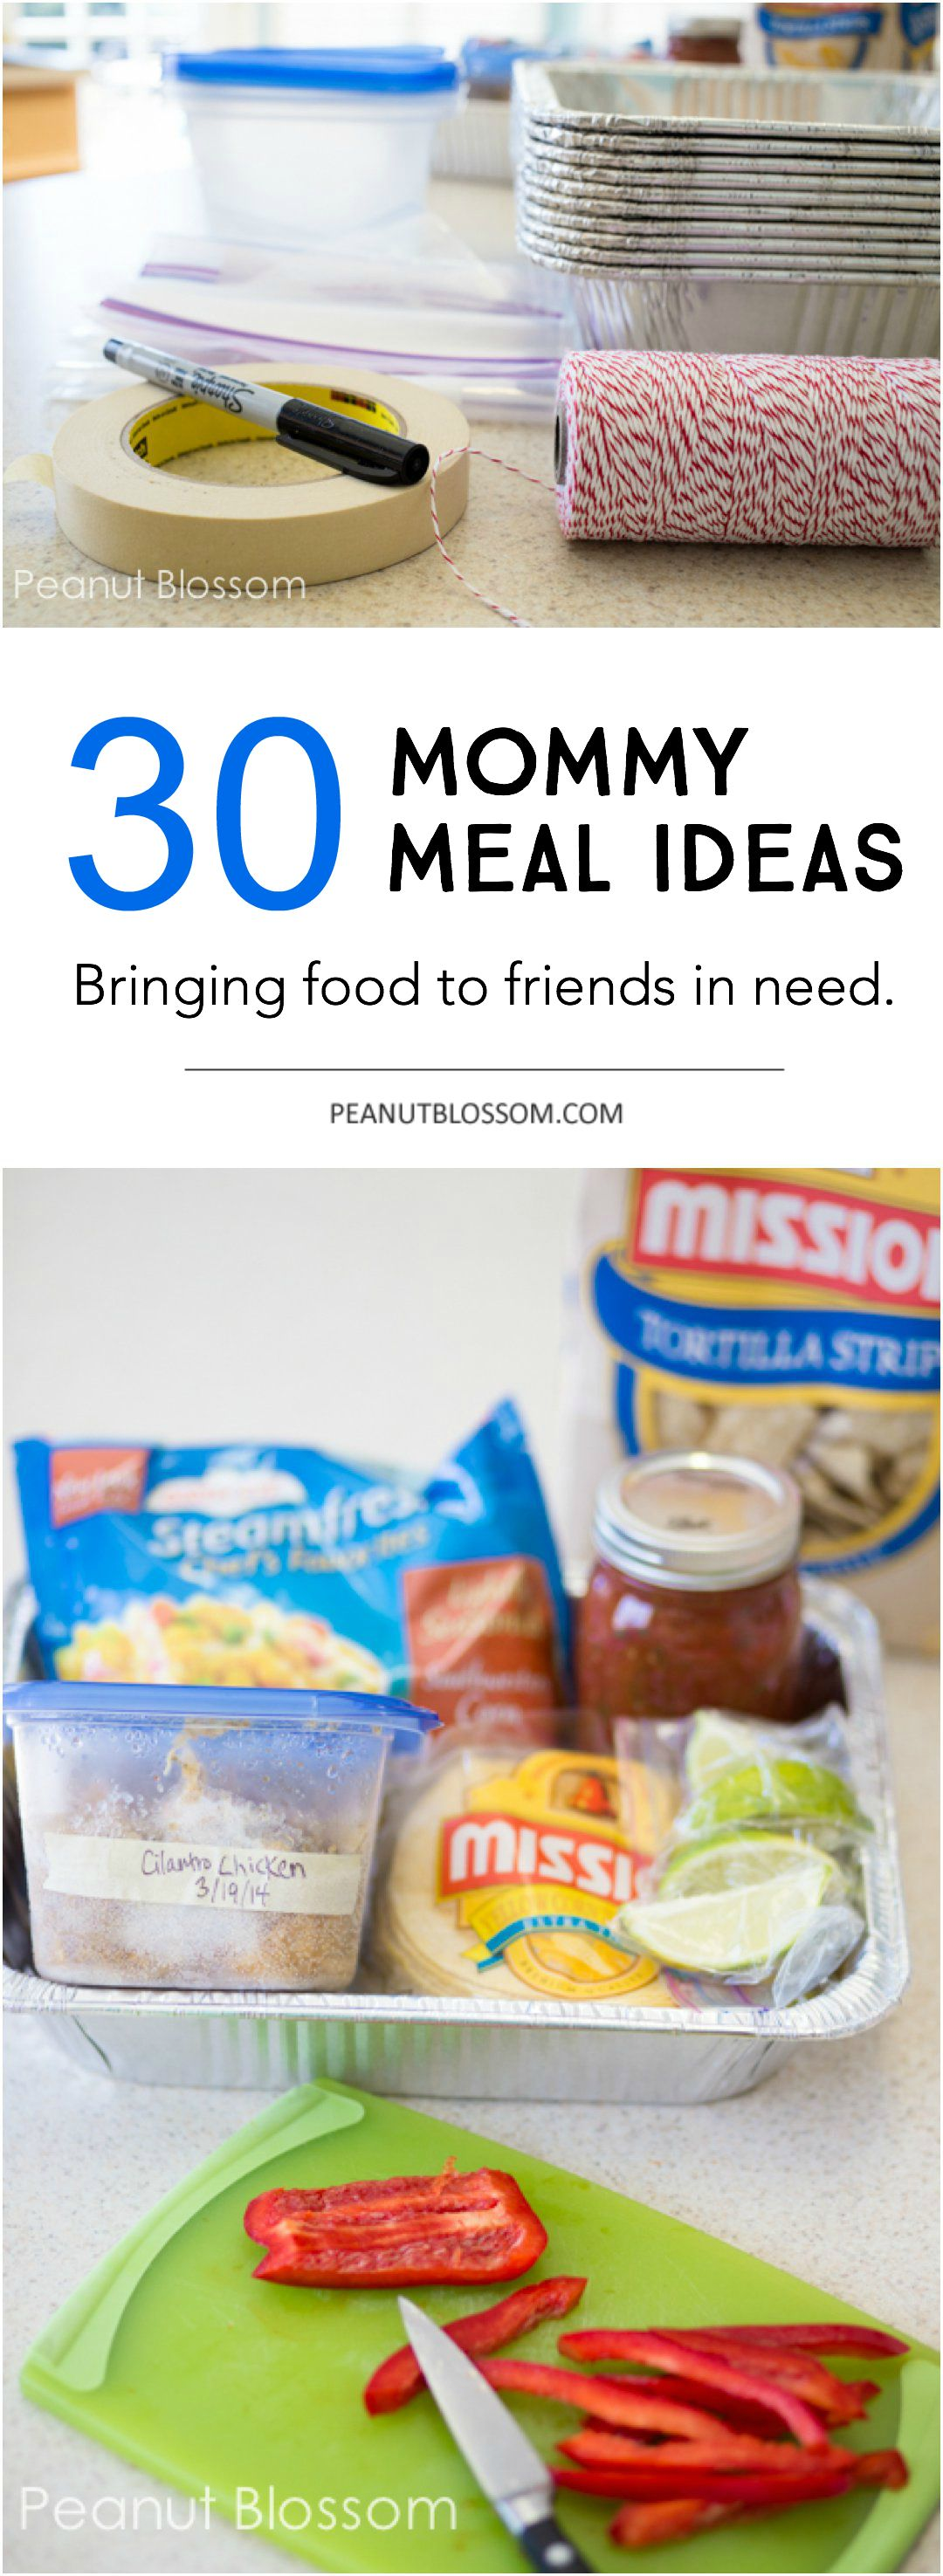 How to Bring Food to a Friend in Need How to Bring Food to a Friend in Need new photo